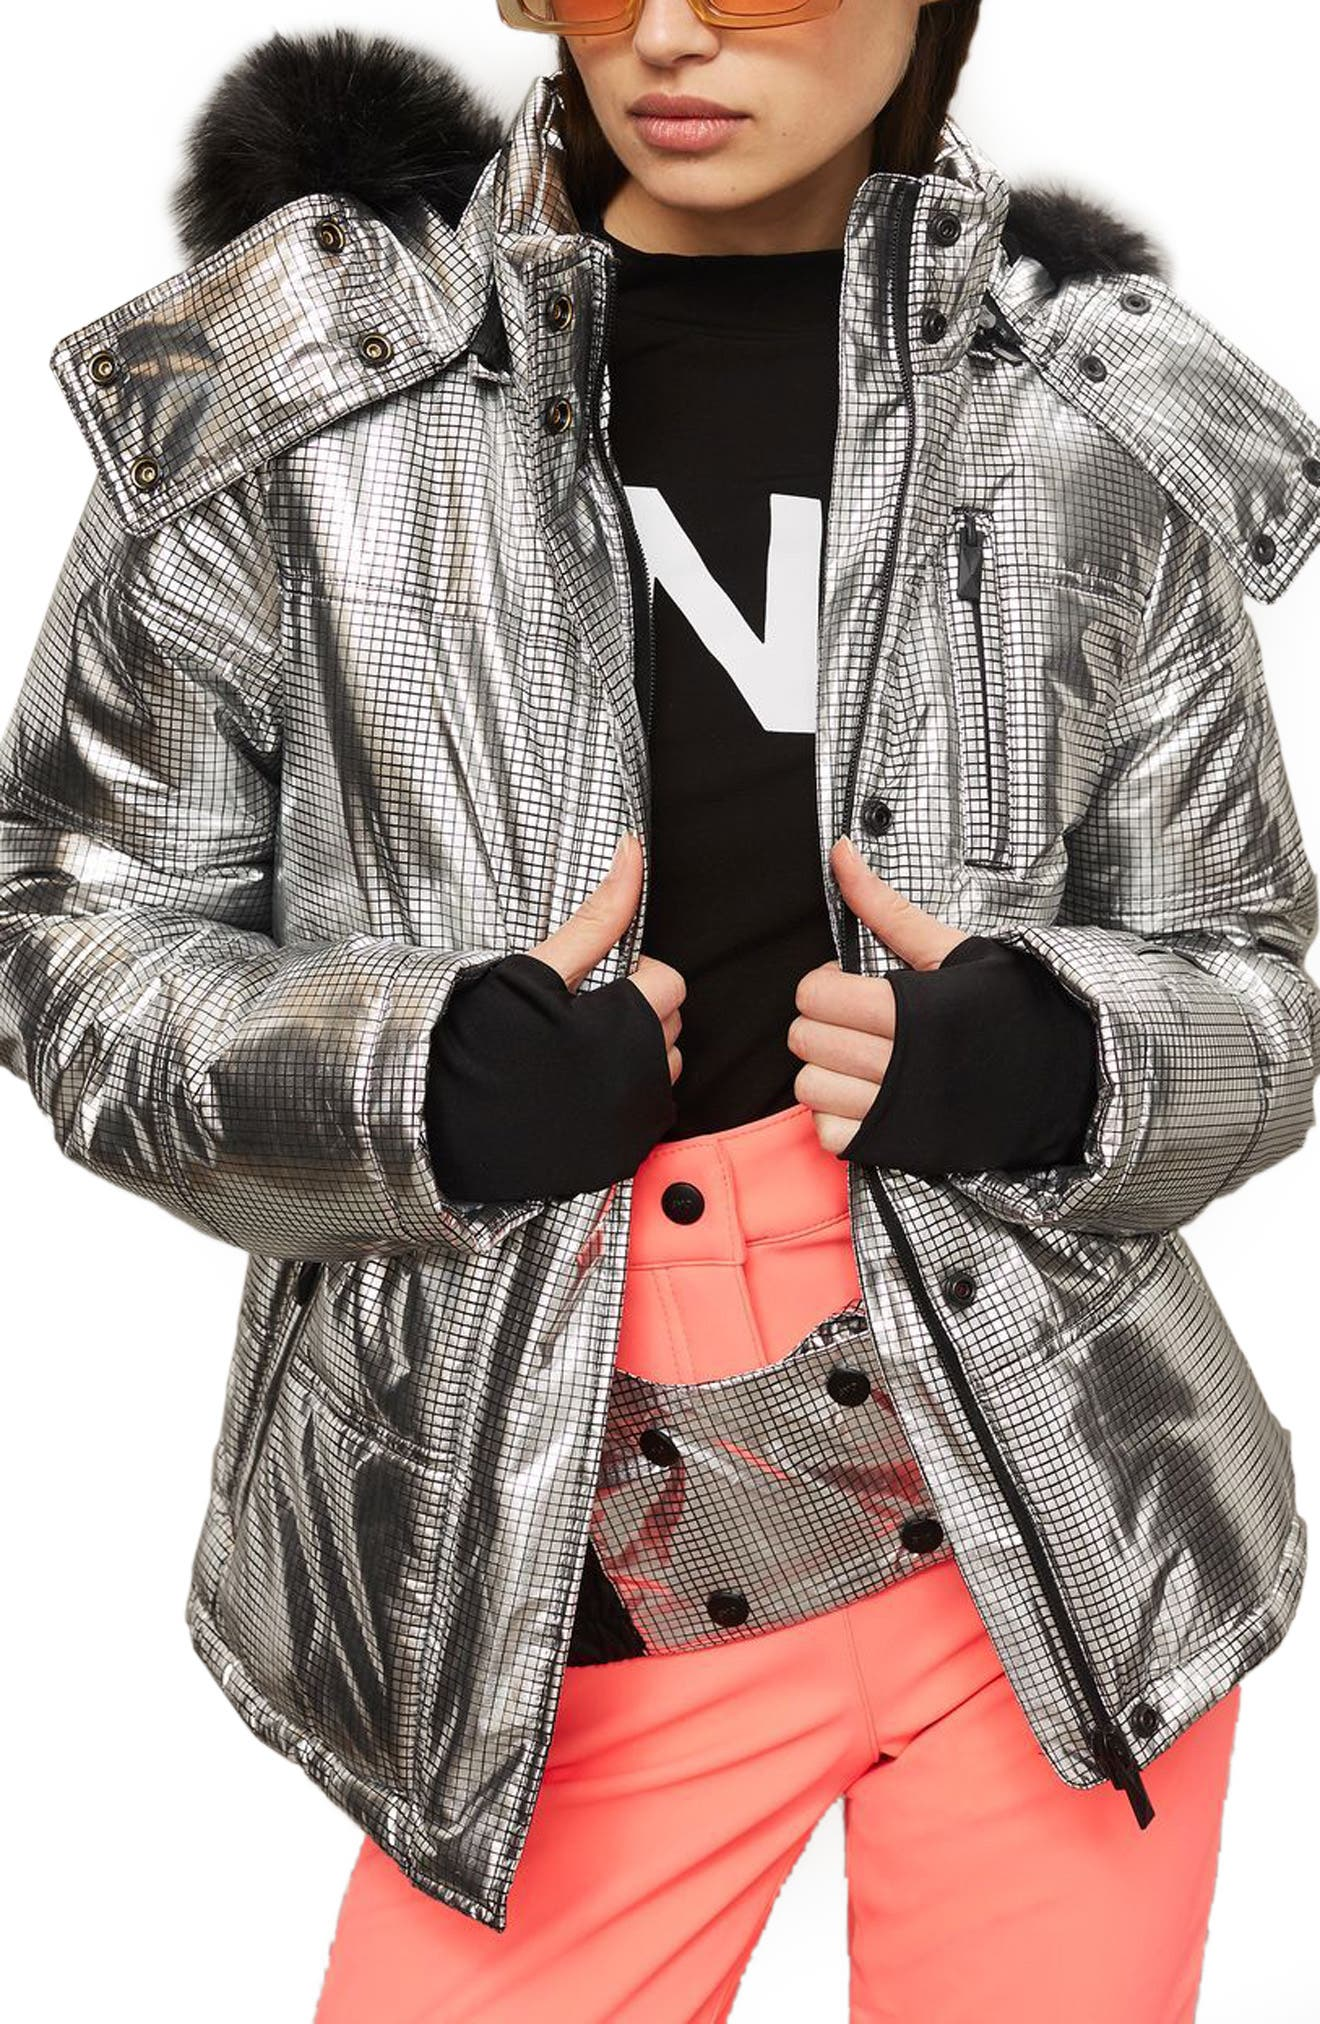 SNO Rio Faux Fur Hood Metallic Puffer Jacket,                             Main thumbnail 1, color,                             040